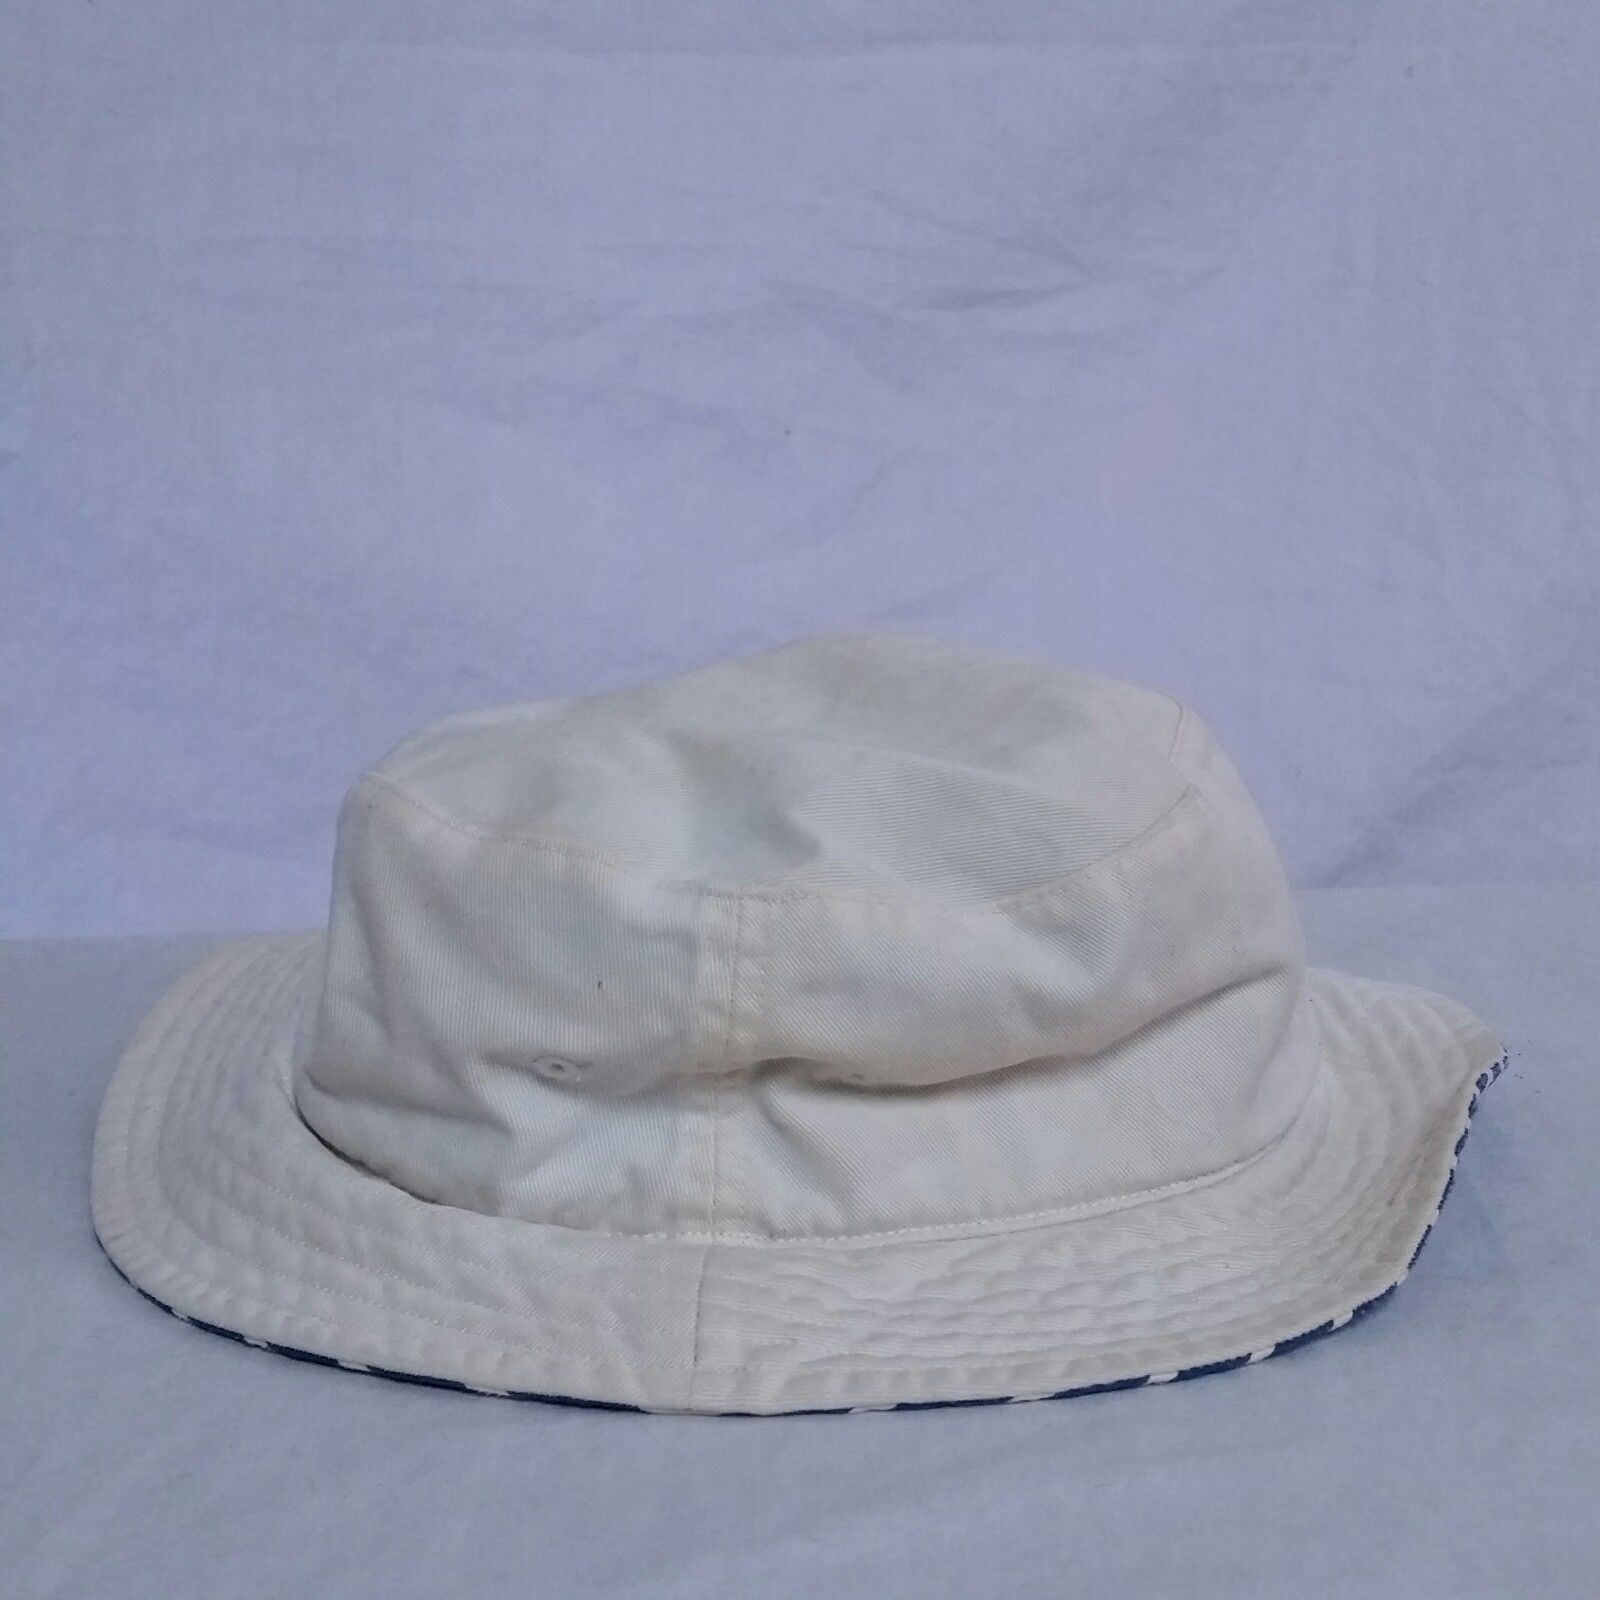 f152f2ff53211 VTG Polo Ralph Lauren Bucket Hat Crest Crown Spell Out 90s Sport Bear  Fisherman